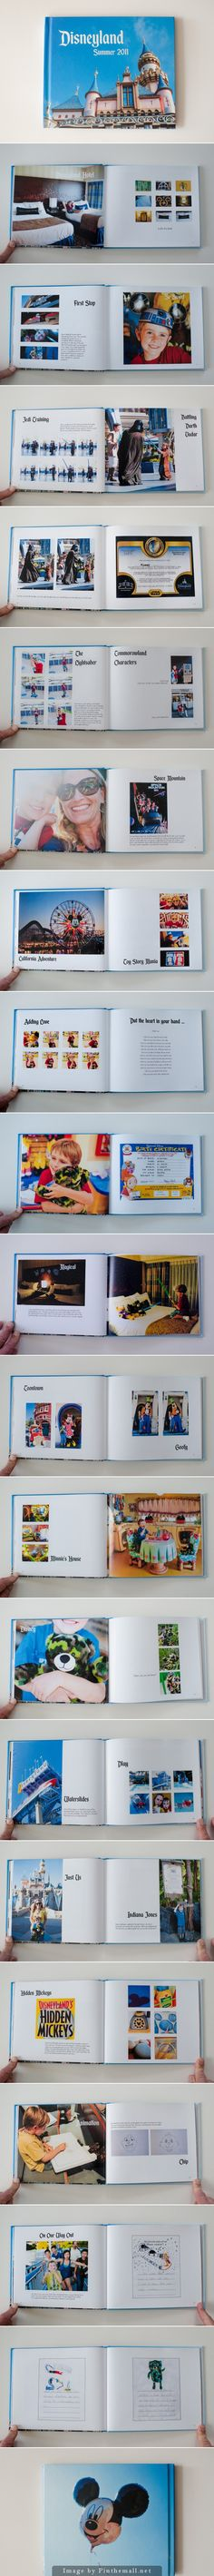 Disney Photo Book | I like her idea of scanning in memorabilia instead of gluing it in the book or putting it in a pocket